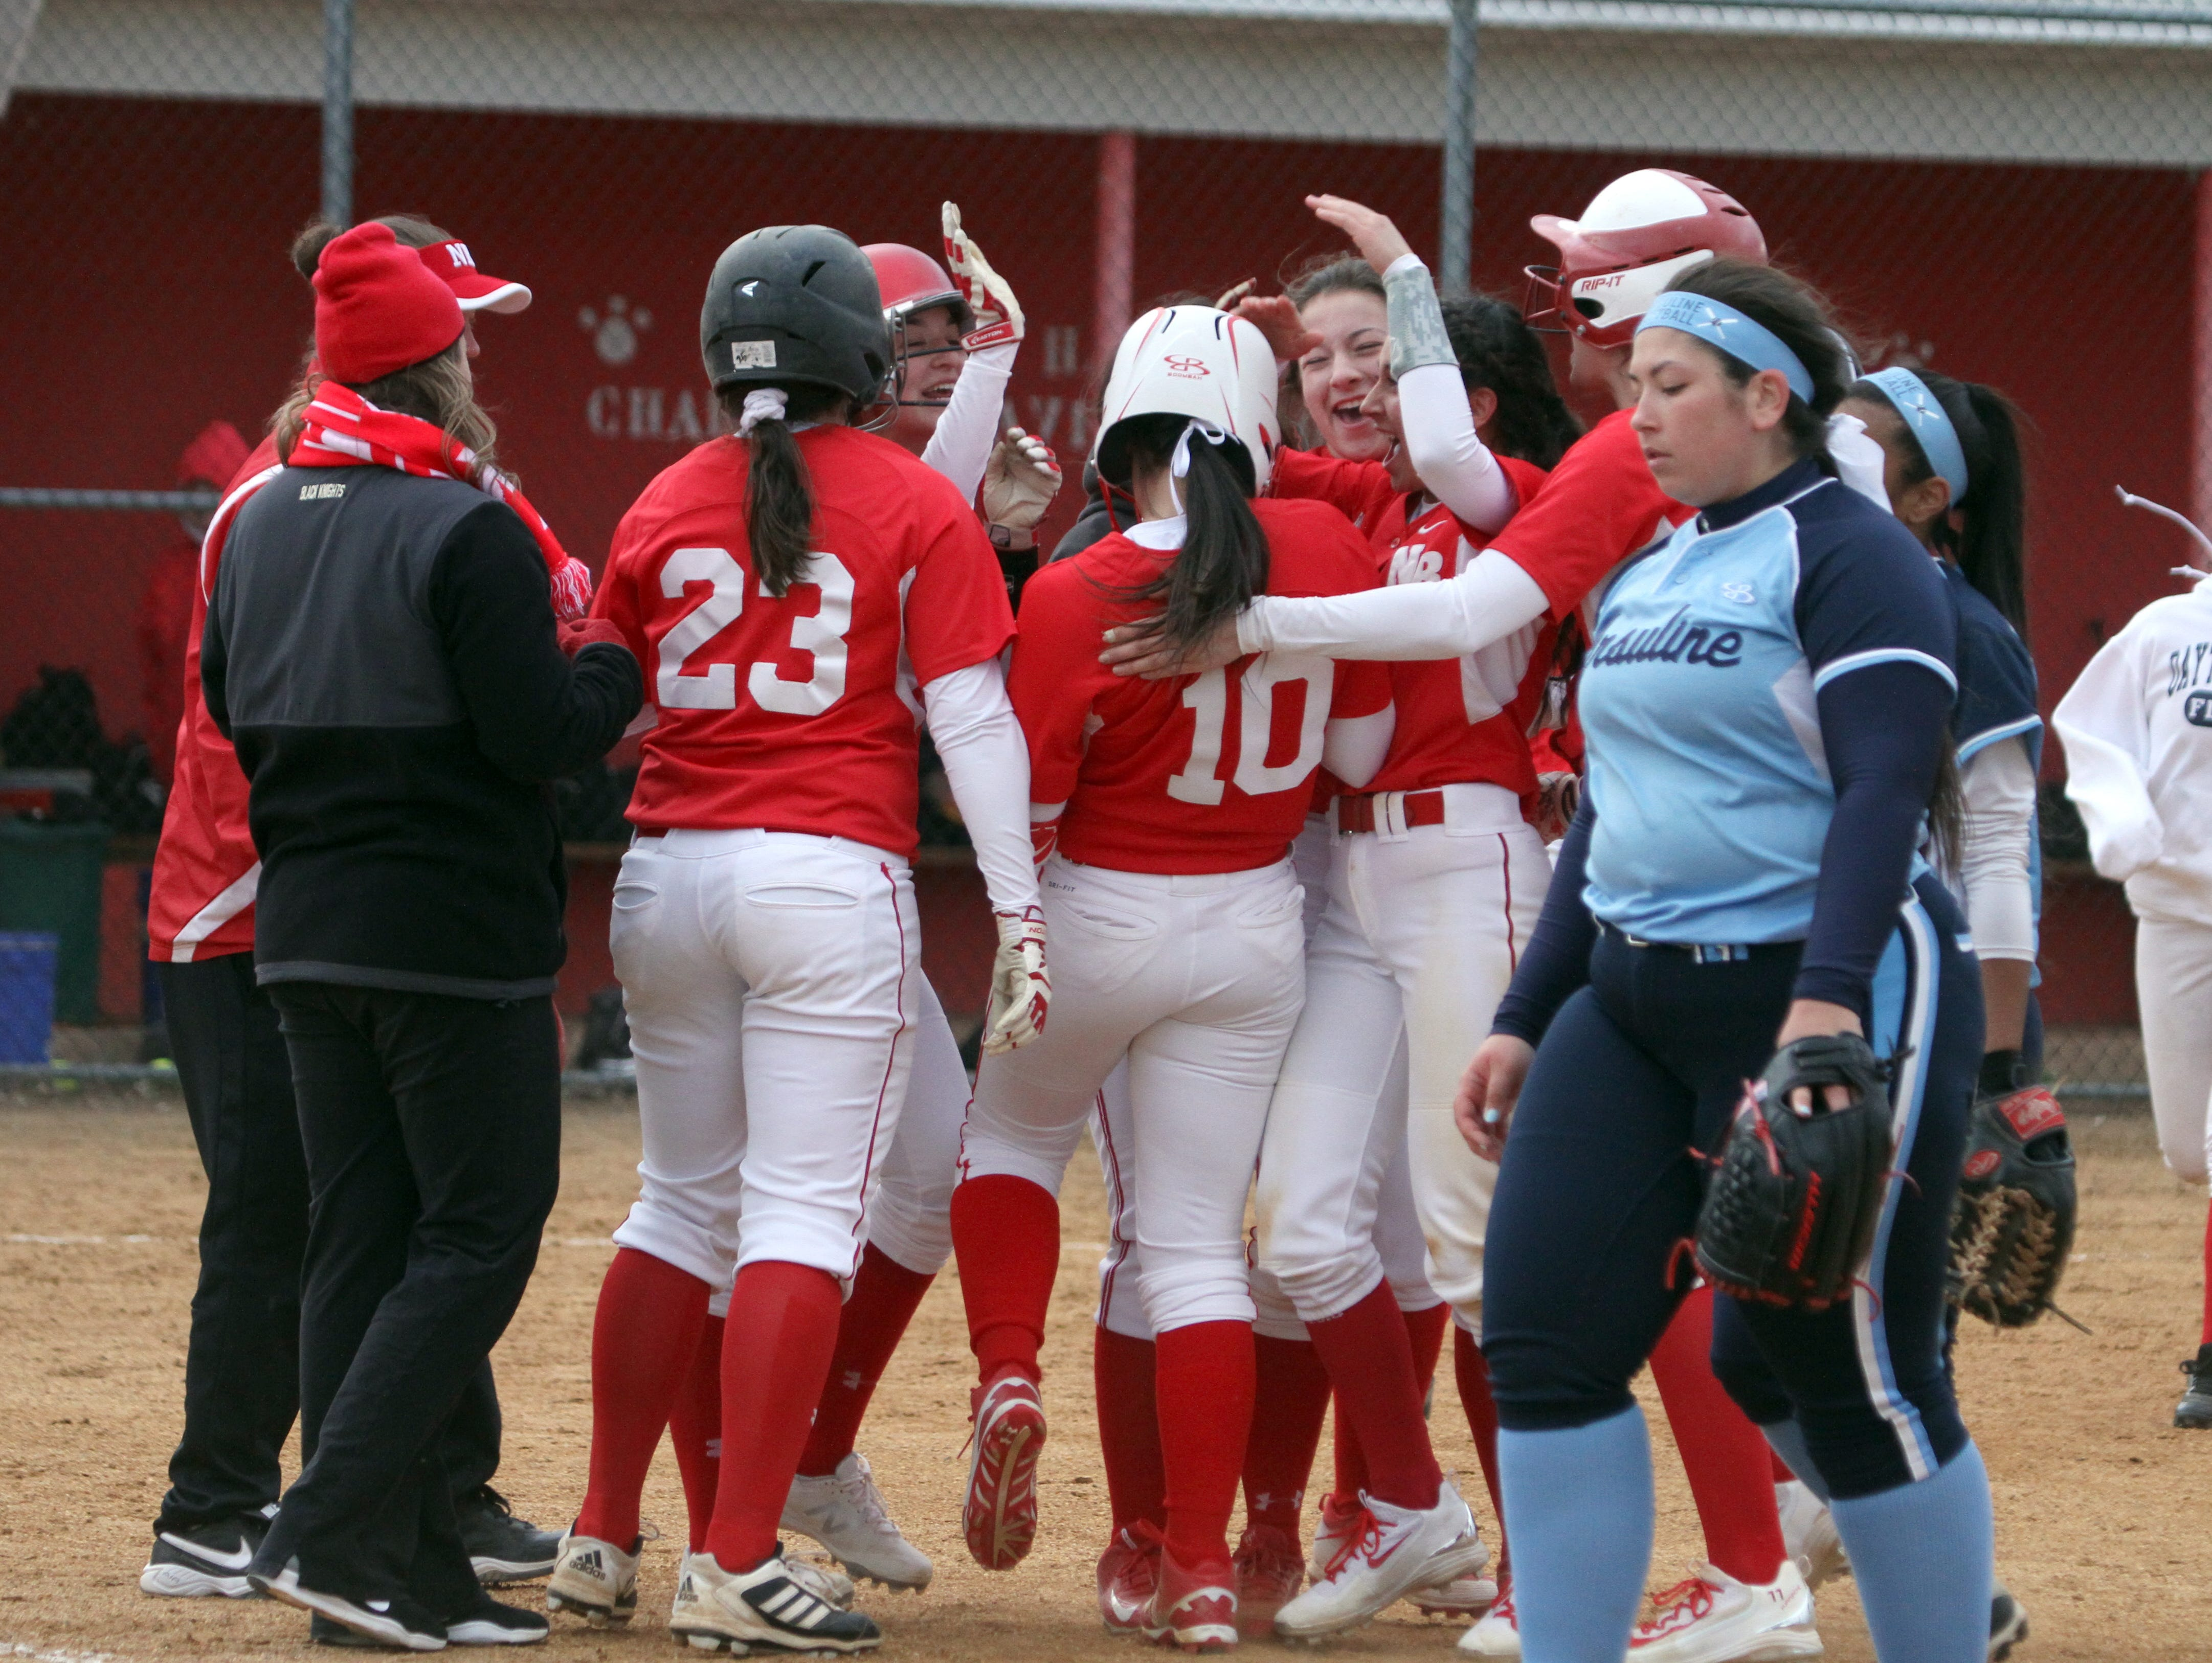 Ursuline pitcher Val Cucci walks off the field as North Rockland's Kayla McDermott is mobbed by teammates after hitting the game winning hit in the bottom of the 7th inning of a varsity softball game at North Rockland High School April 7, 2016. North Rockland defeated Ursuline 6-5.